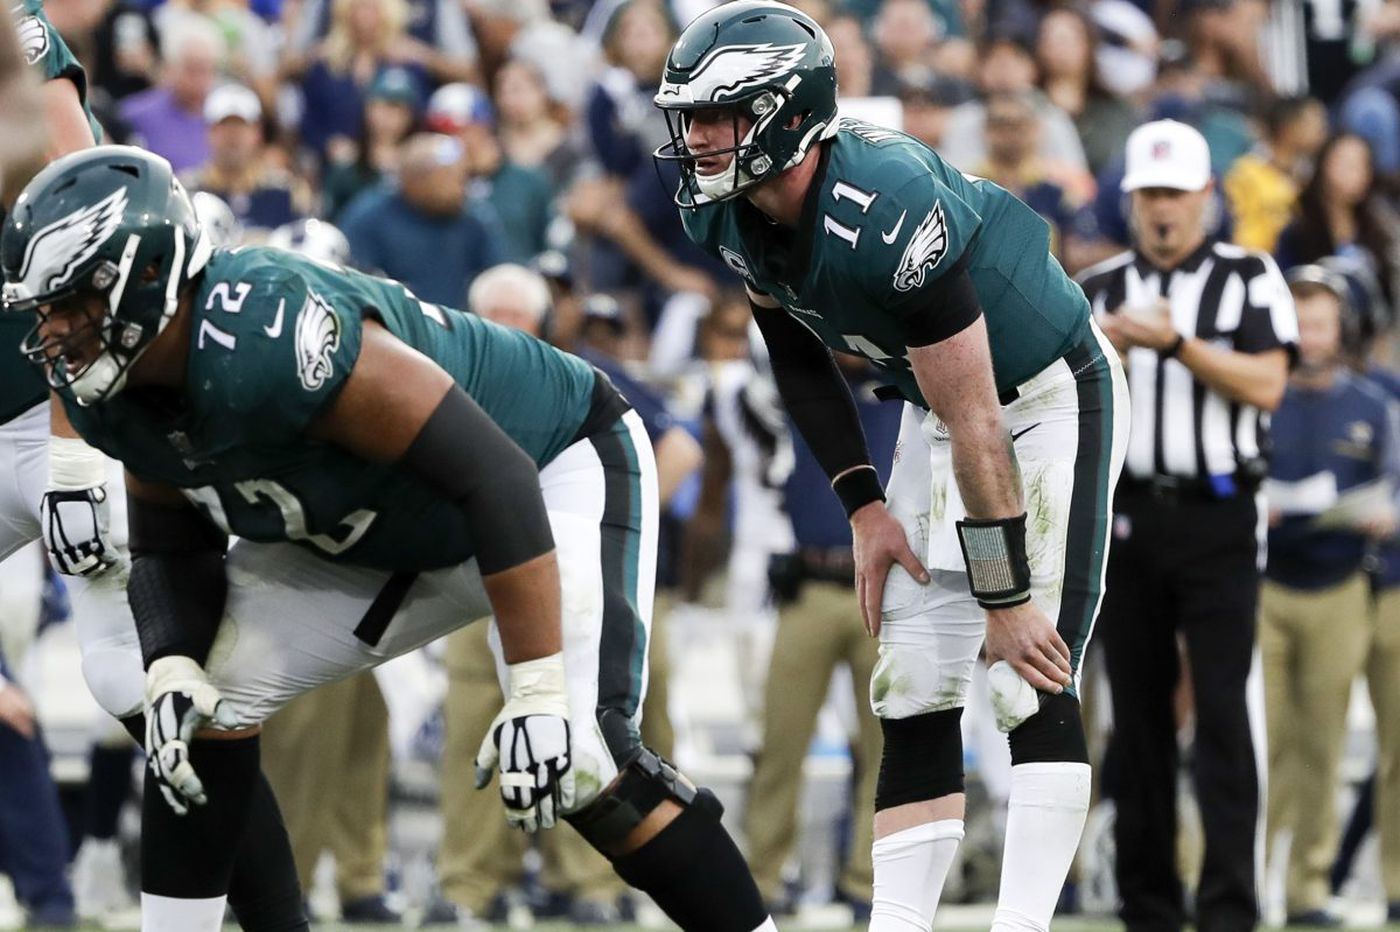 Eagles win but lose Wentz, Philly's top 25 restaurants, FBI probes PPA | Morning Newsletter